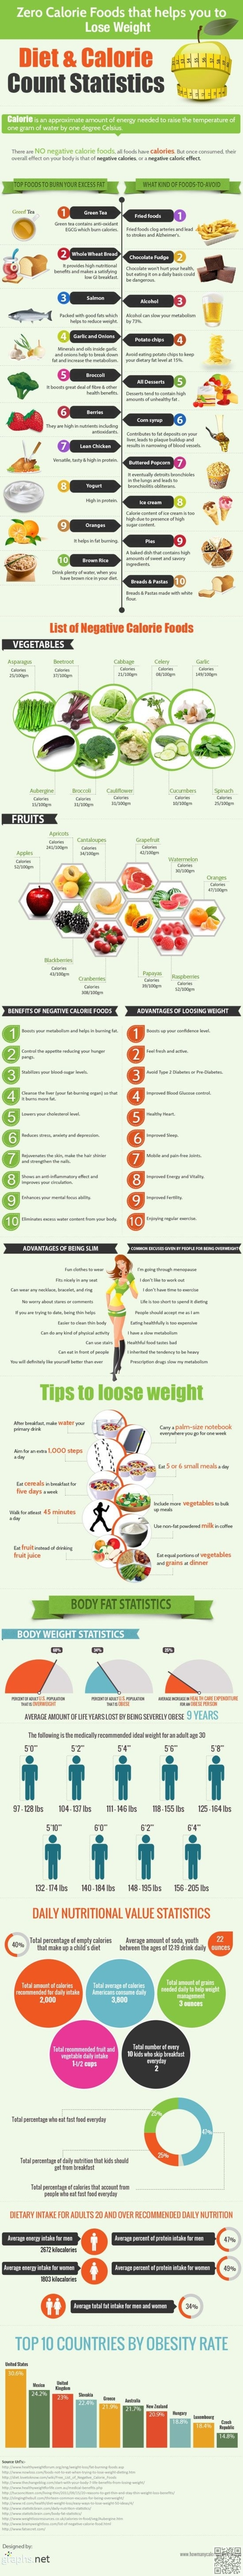 Lose Weight With These Foods